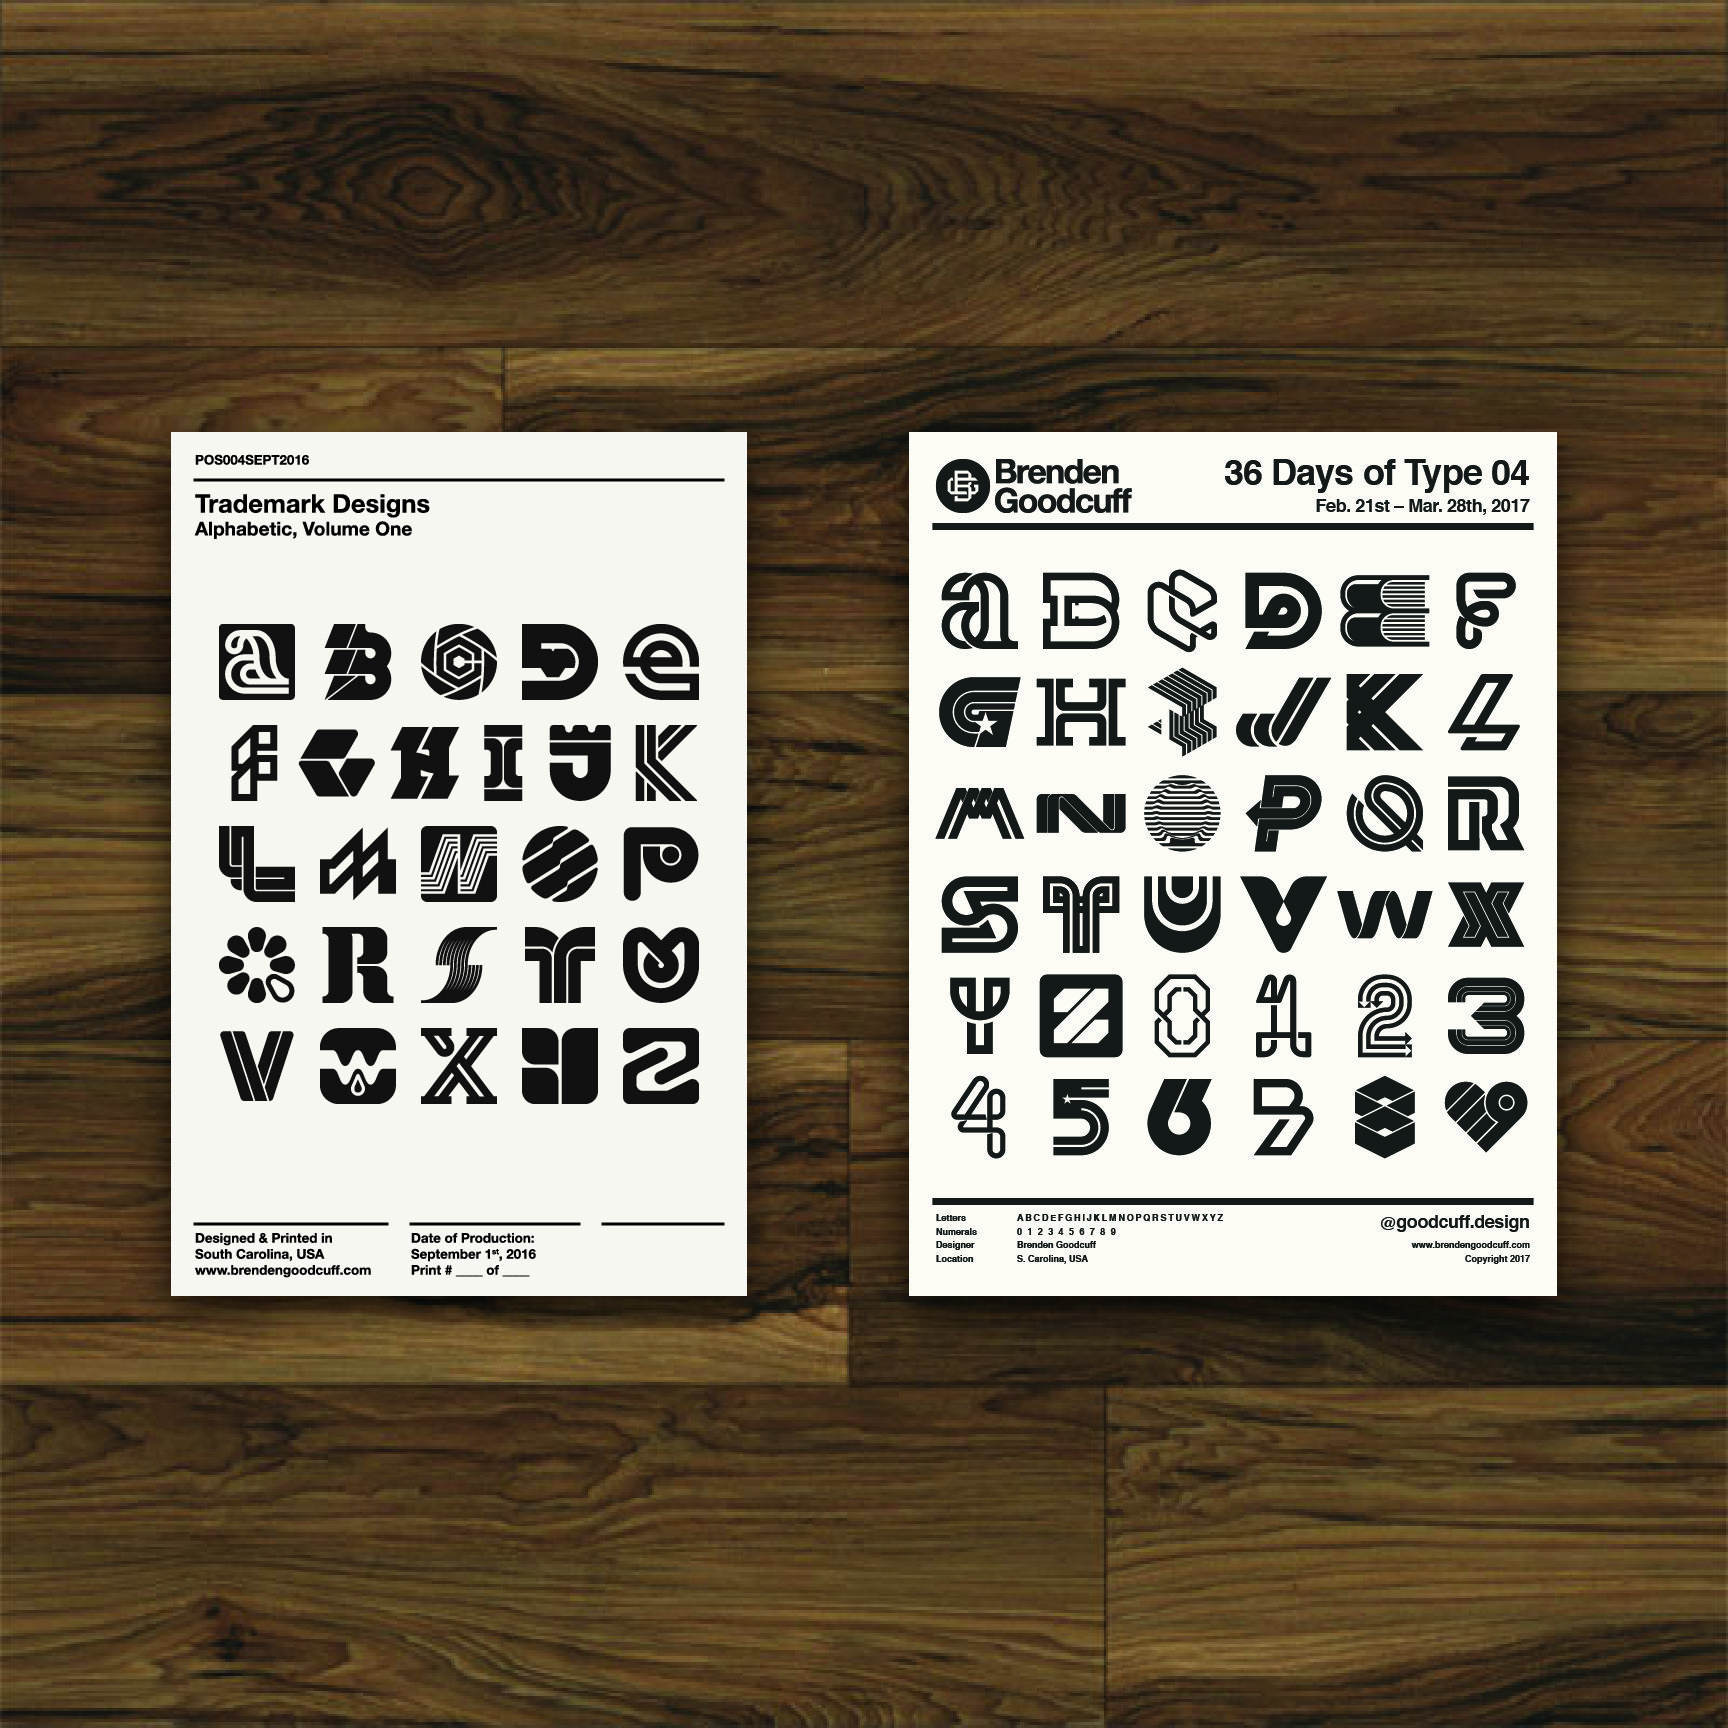 a visual presentation of the alphabet created by Brenden Goodcuff